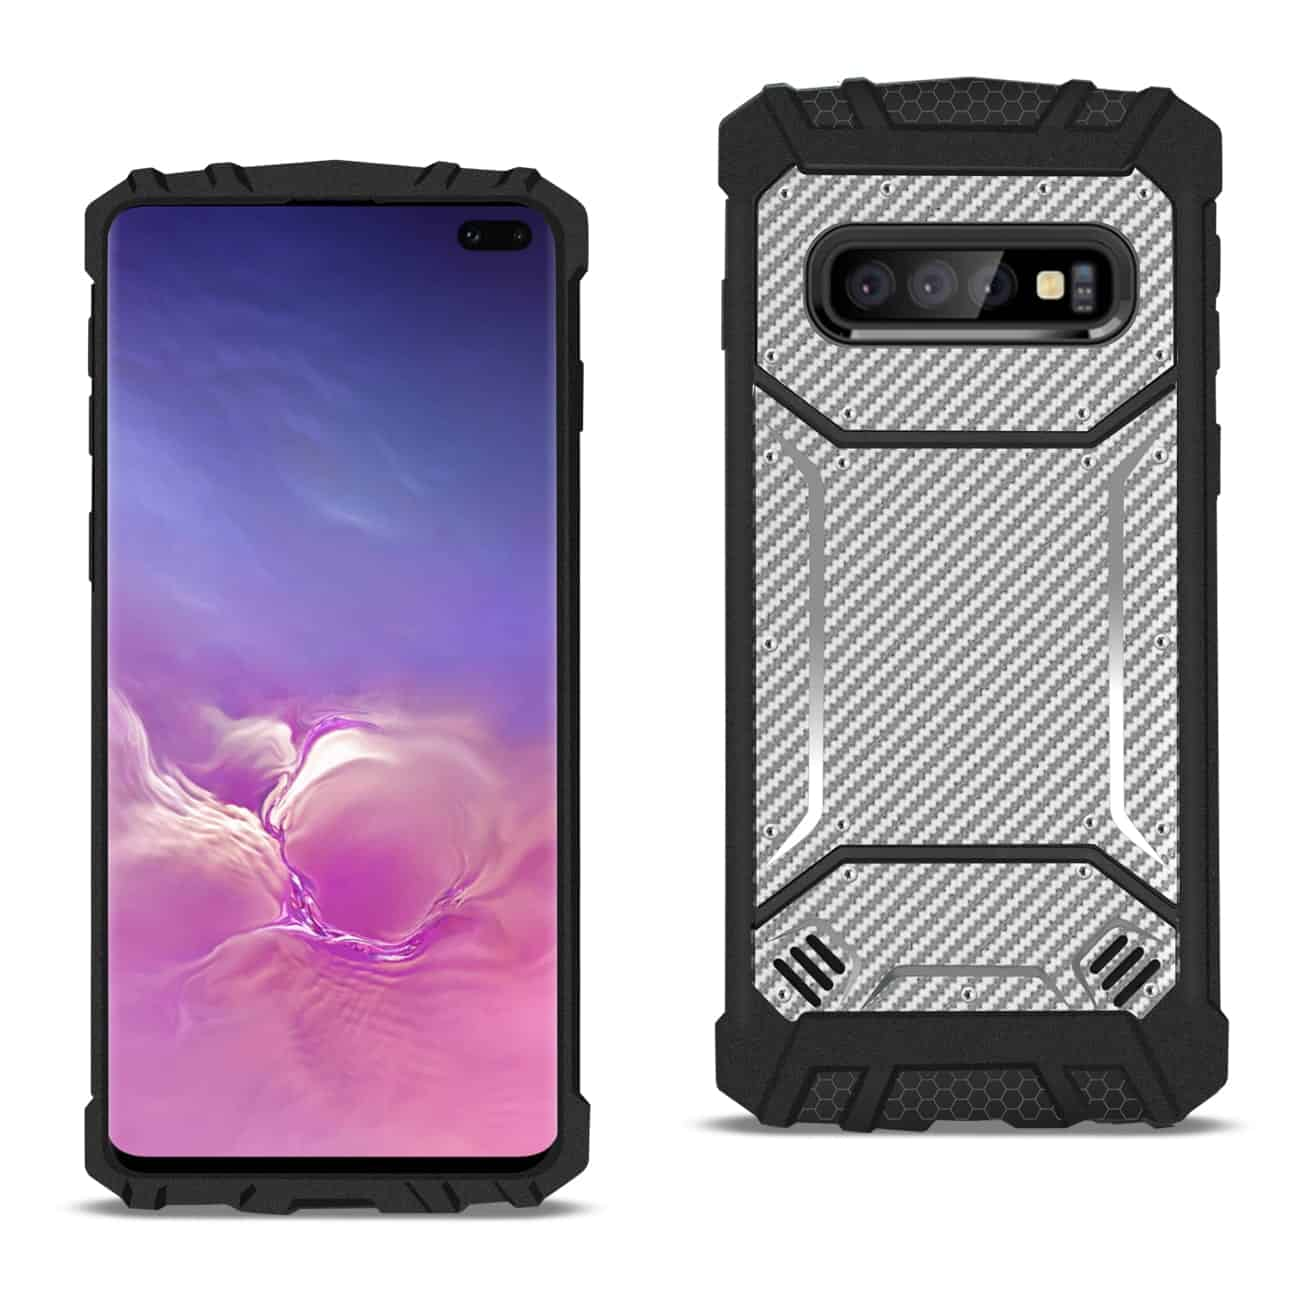 SAMSUNG GALAXY S10 Plus Carbon Fiber Hard-shell Case In Gray